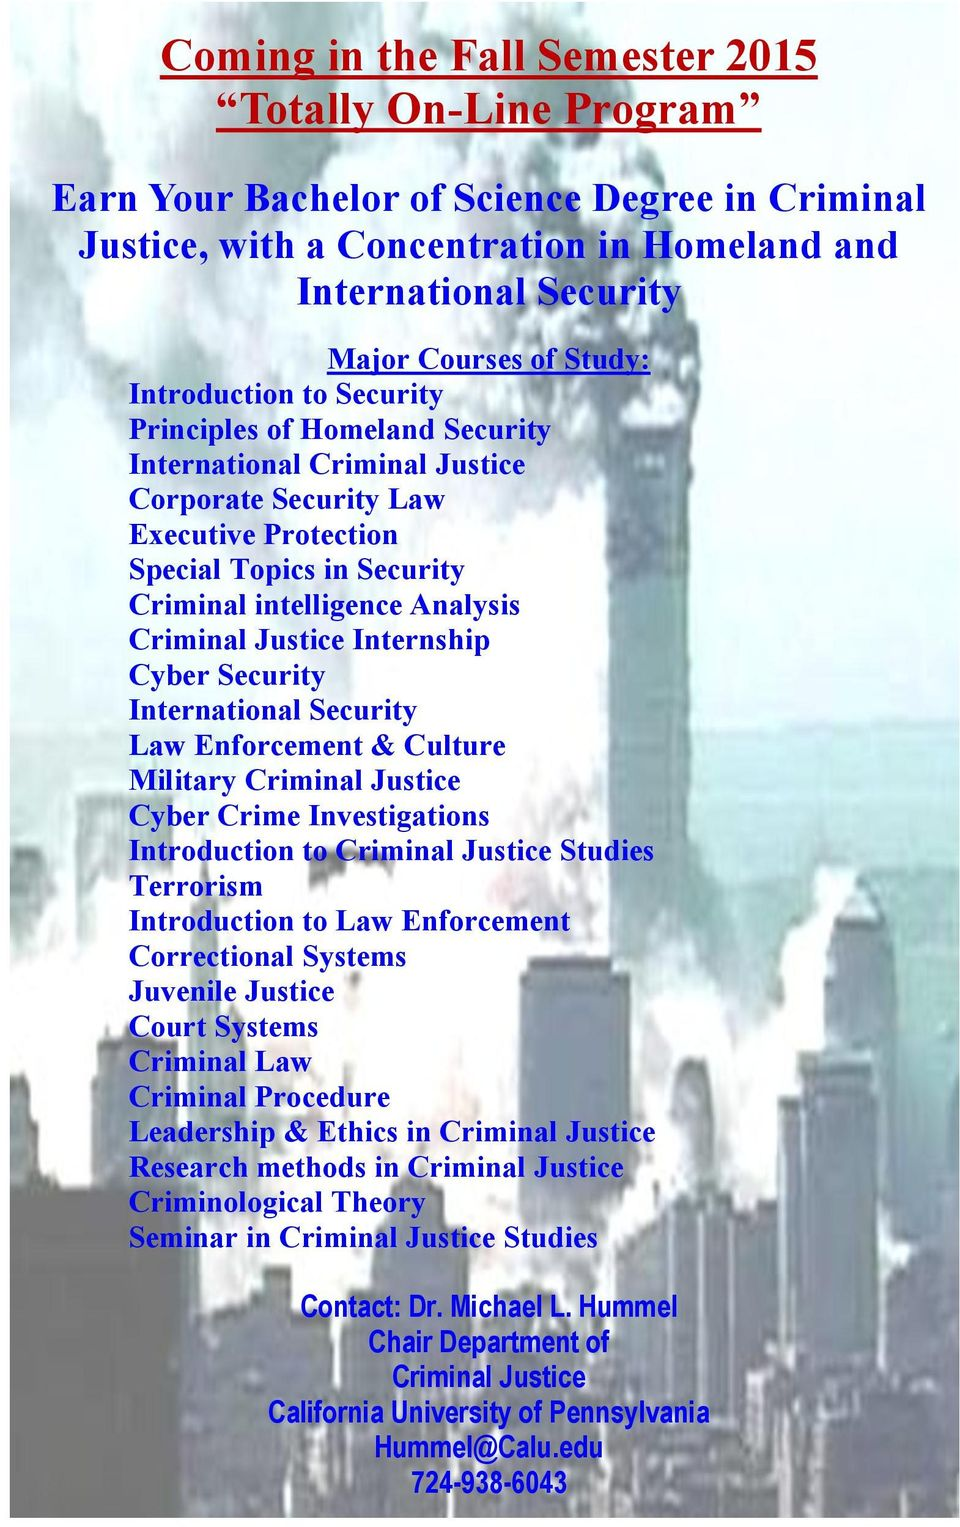 Justice Internship Cyber Security International Security Law Enforcement & Culture Military Criminal Justice Cyber Crime Investigations Introduction to Criminal Justice Studies Terrorism Introduction